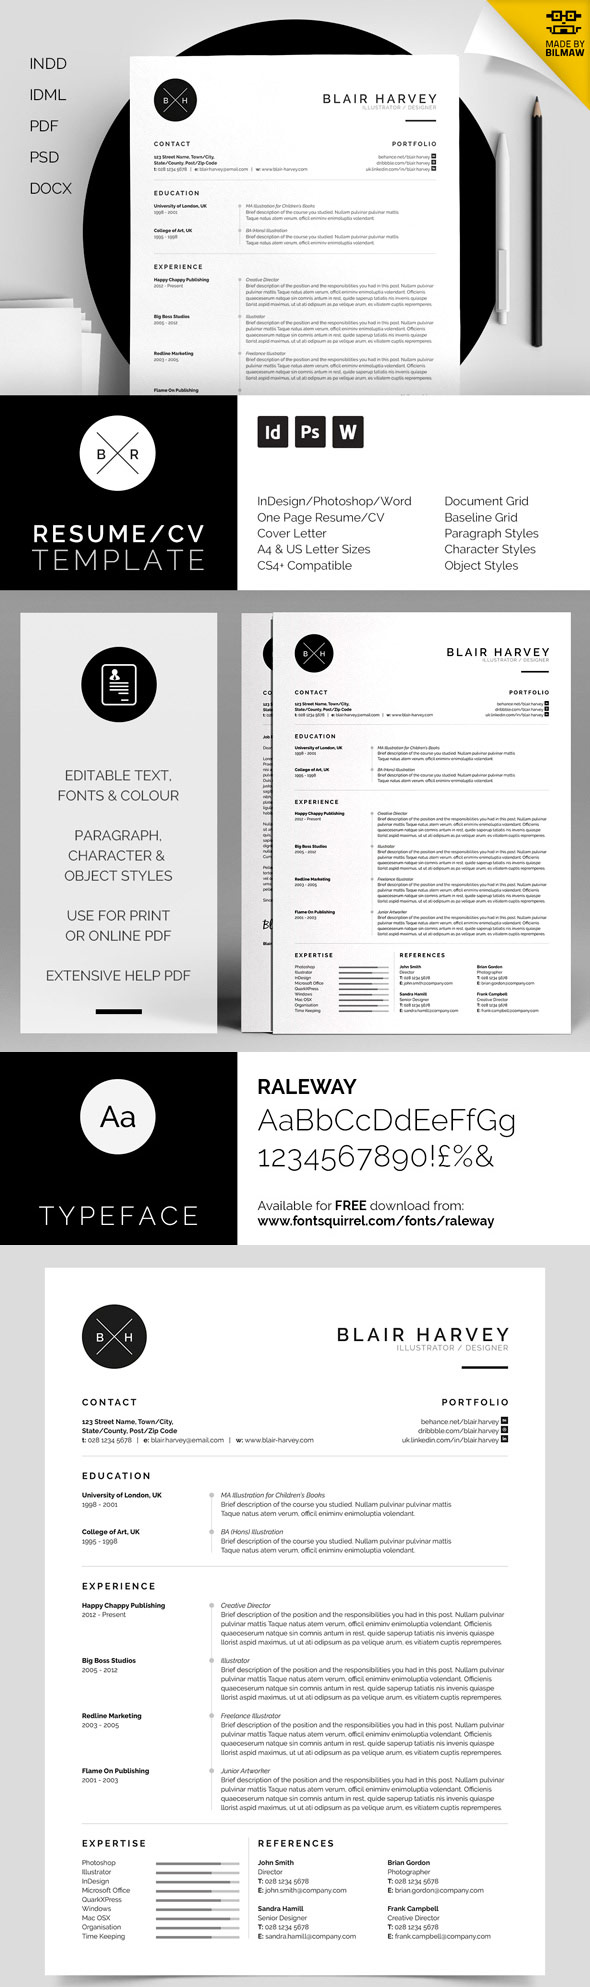 Blair - Branded Minimal Resume Template Set